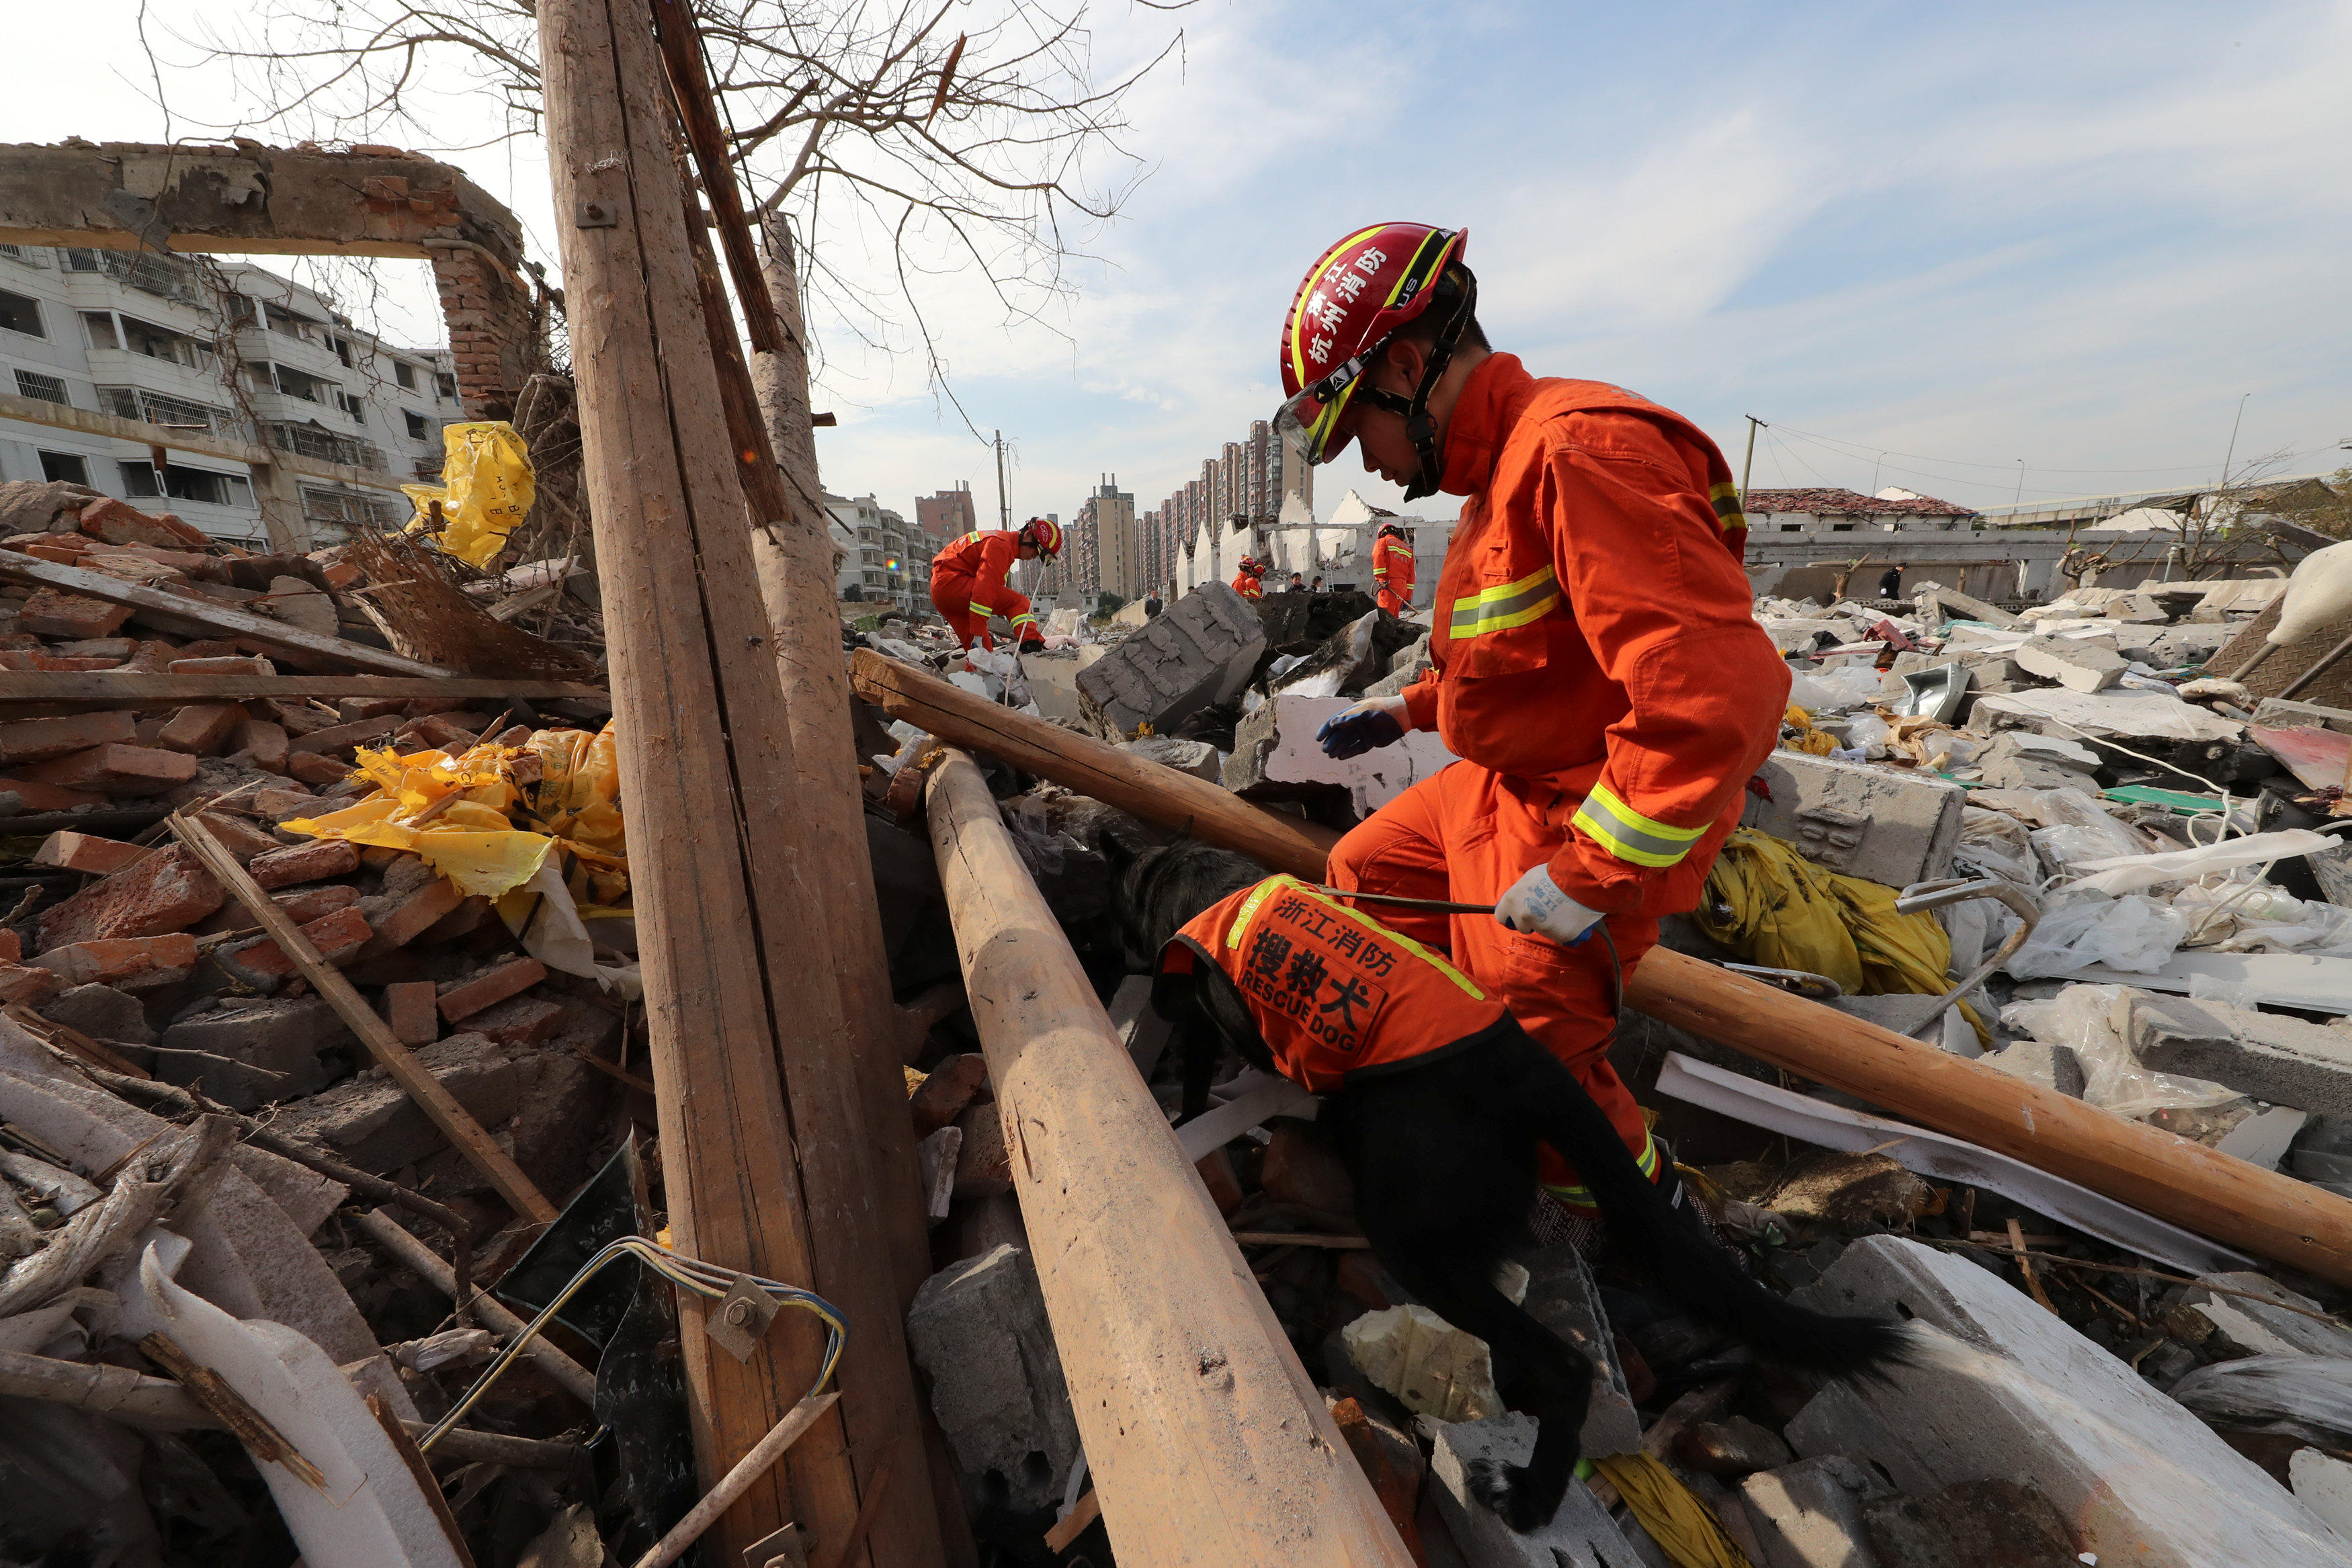 Explosion in port city south of Shanghai kills 2, injures 30